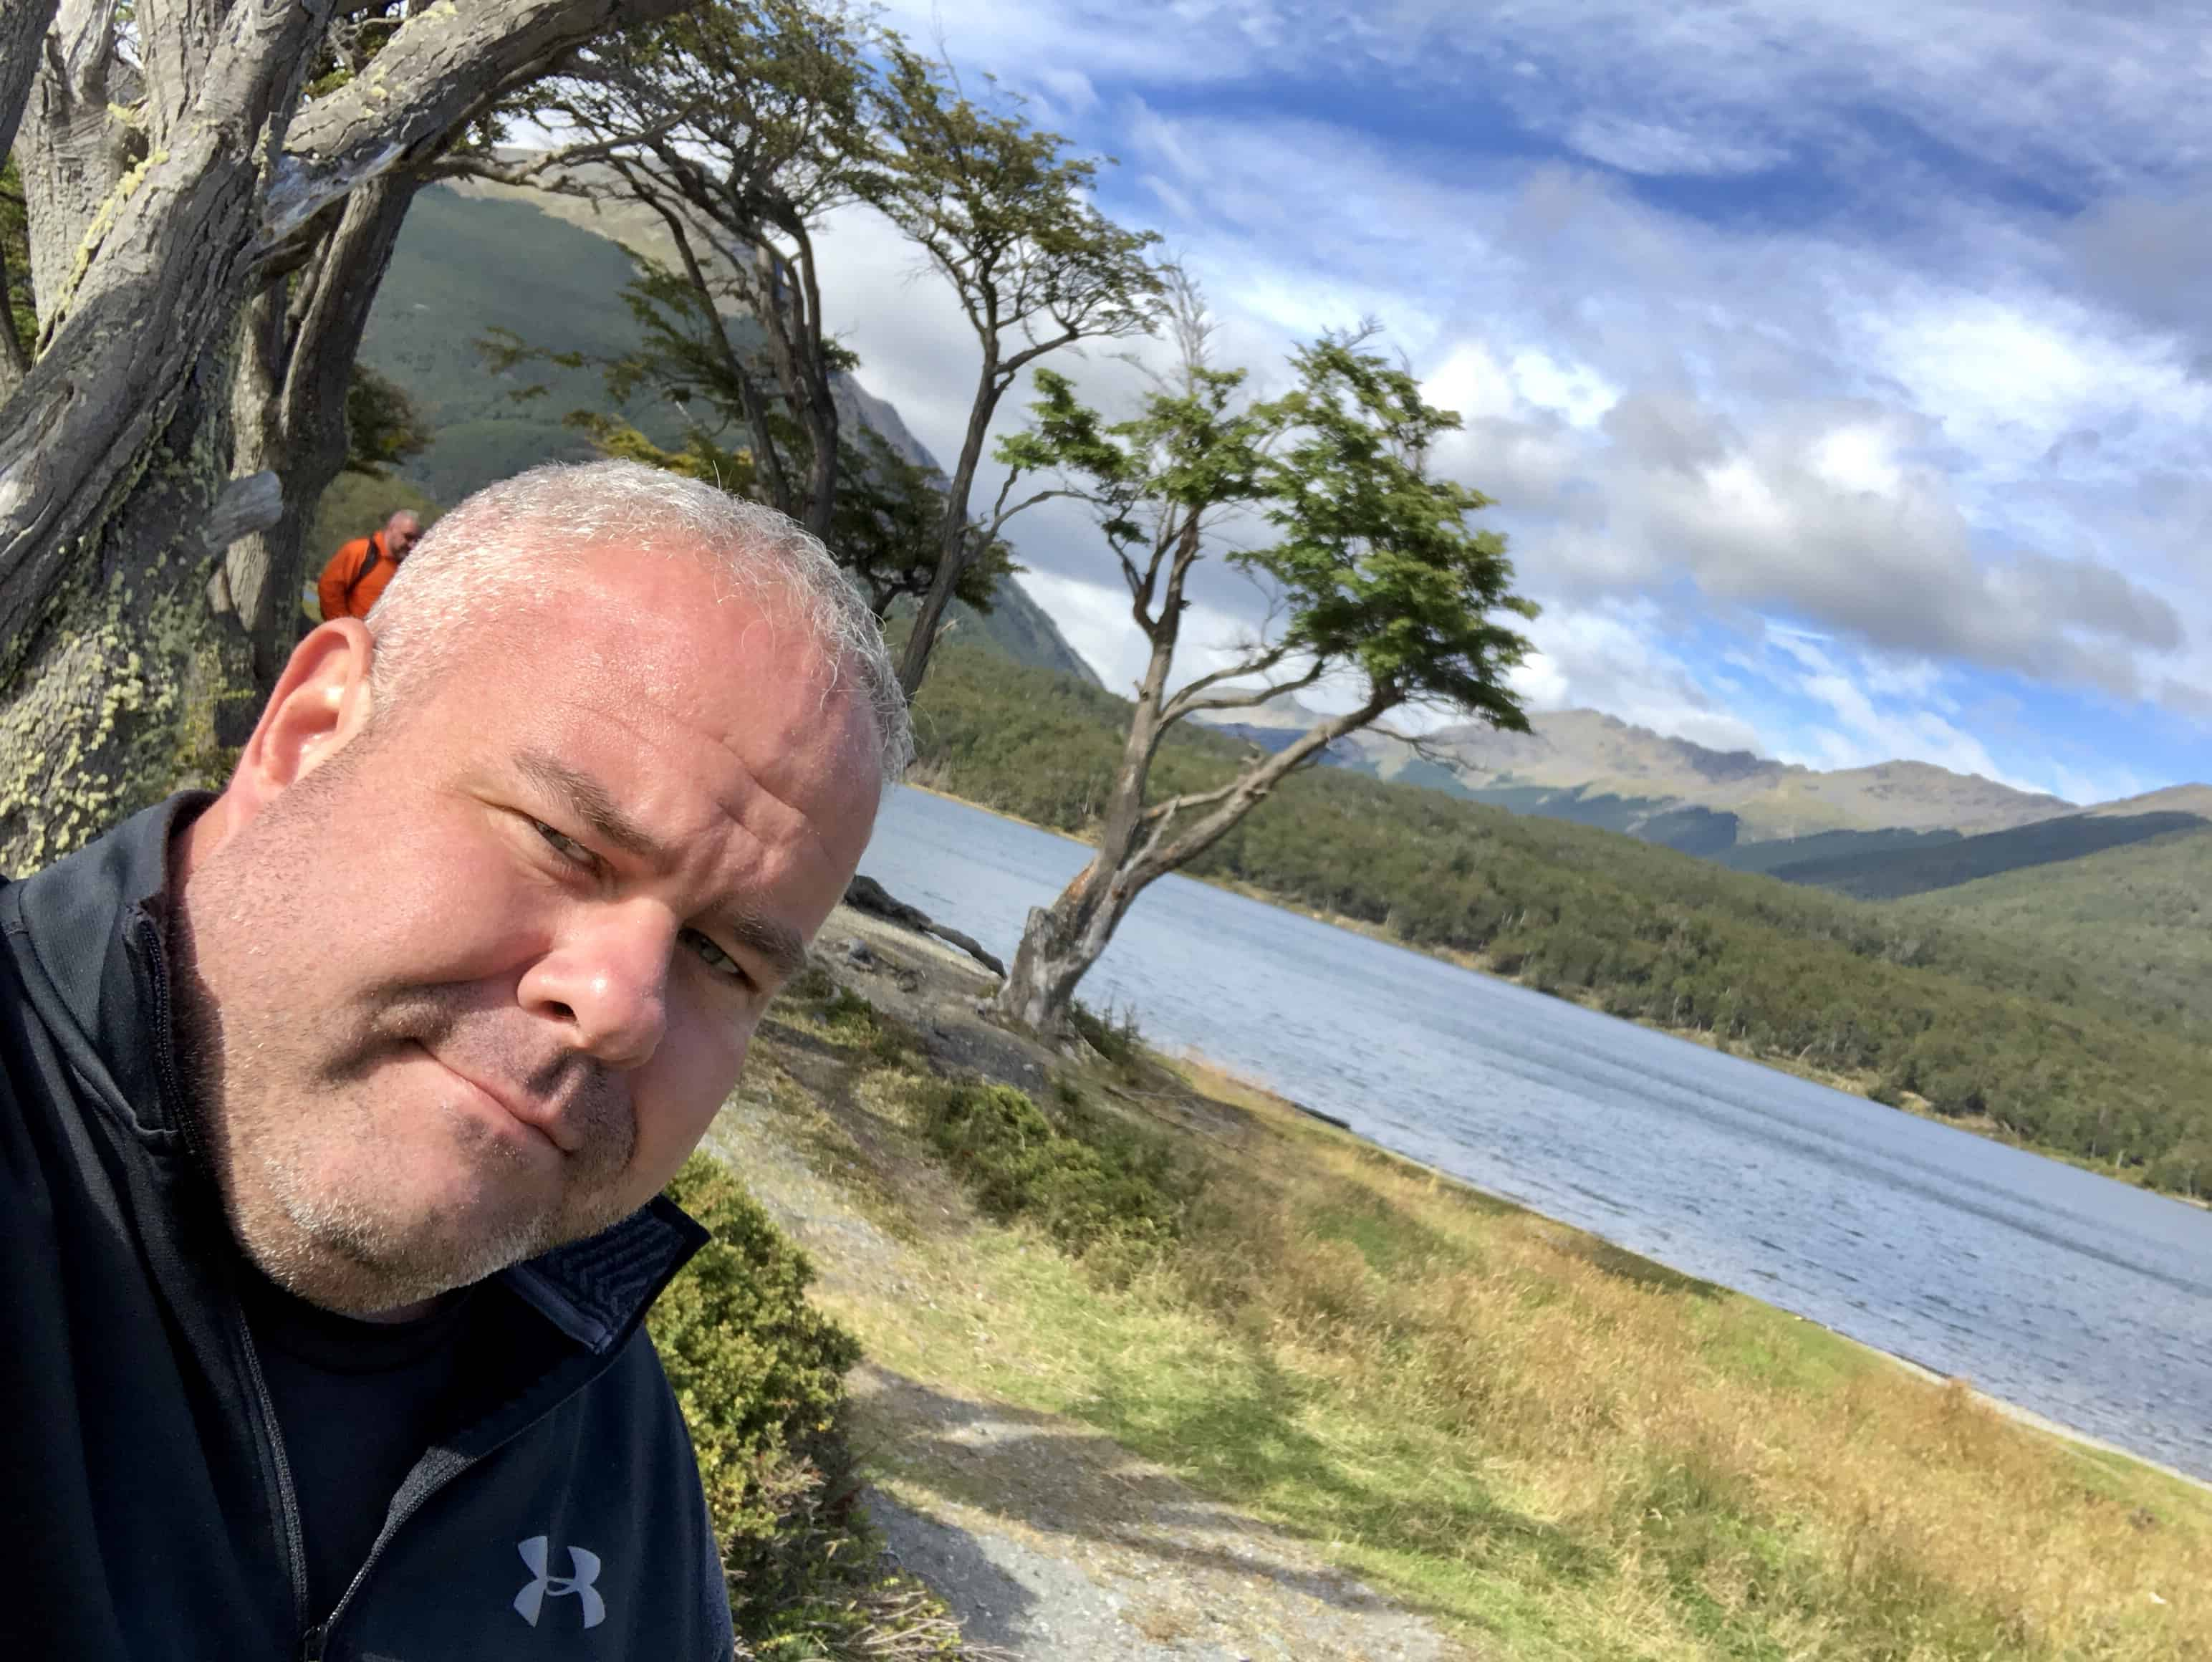 Quick selfie walking along shore of Isla Grande de Tierra del Fuego near the border of Argentina and Chile.